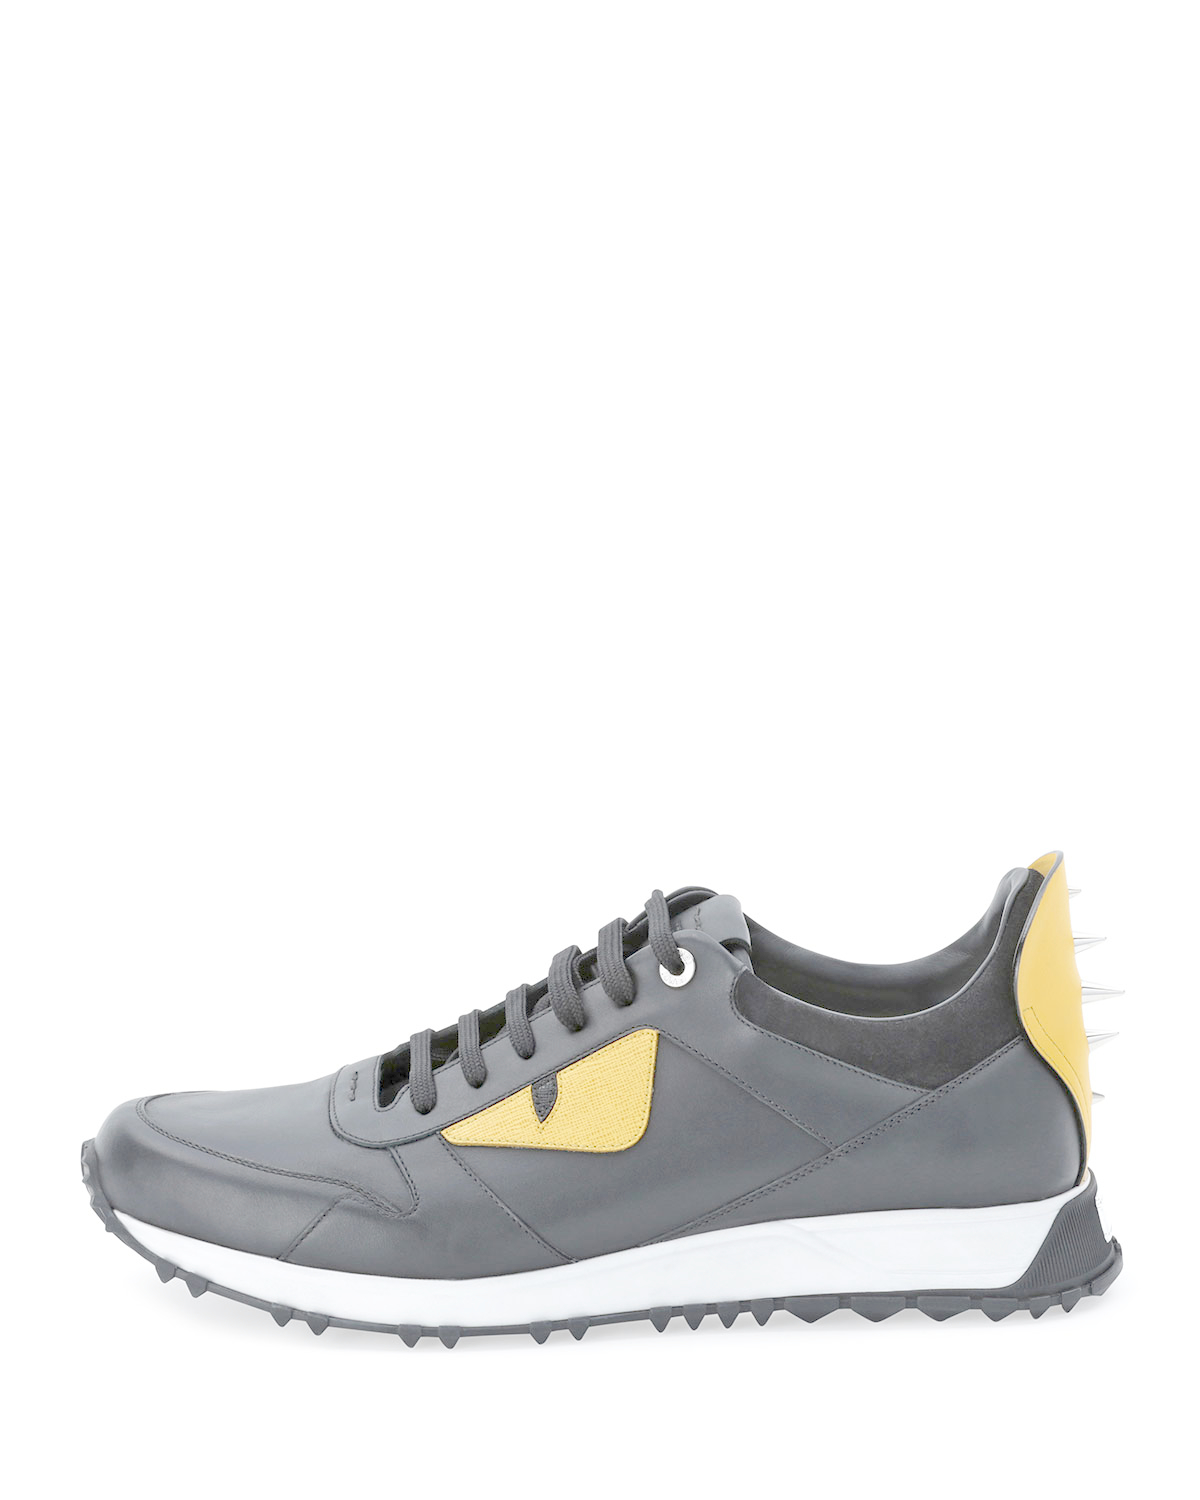 bd0949cd6da https   www.lyst.com shoes fendi-monster-runner-spike-back-leather ...